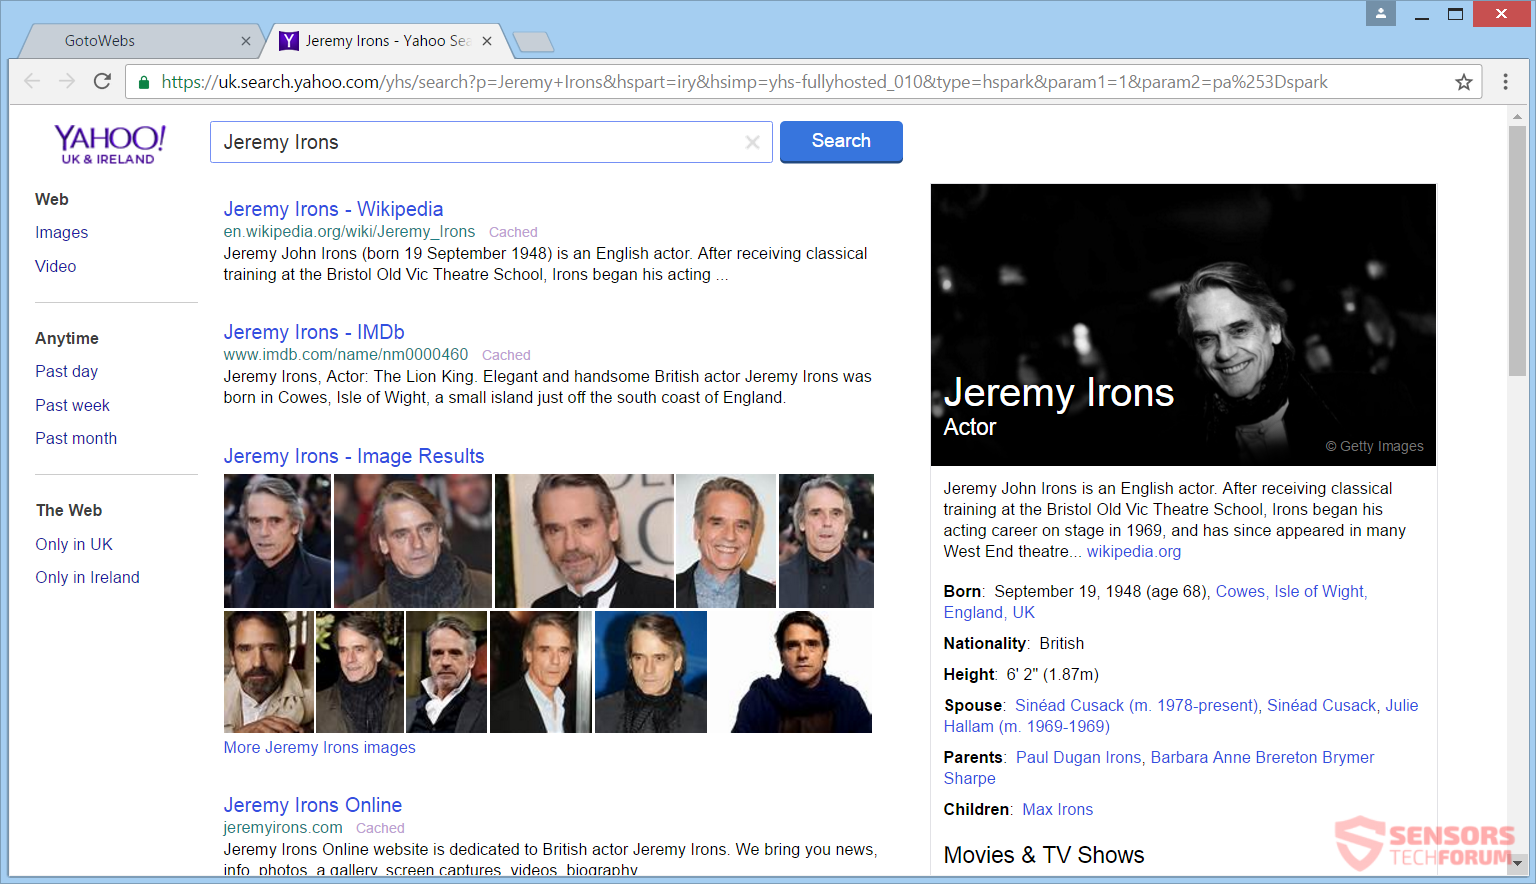 stf-gotowebs-com-browser-hijacker-go-to-webs-redirect-yahoo-search-results-jeremy-irons-uk-ireland